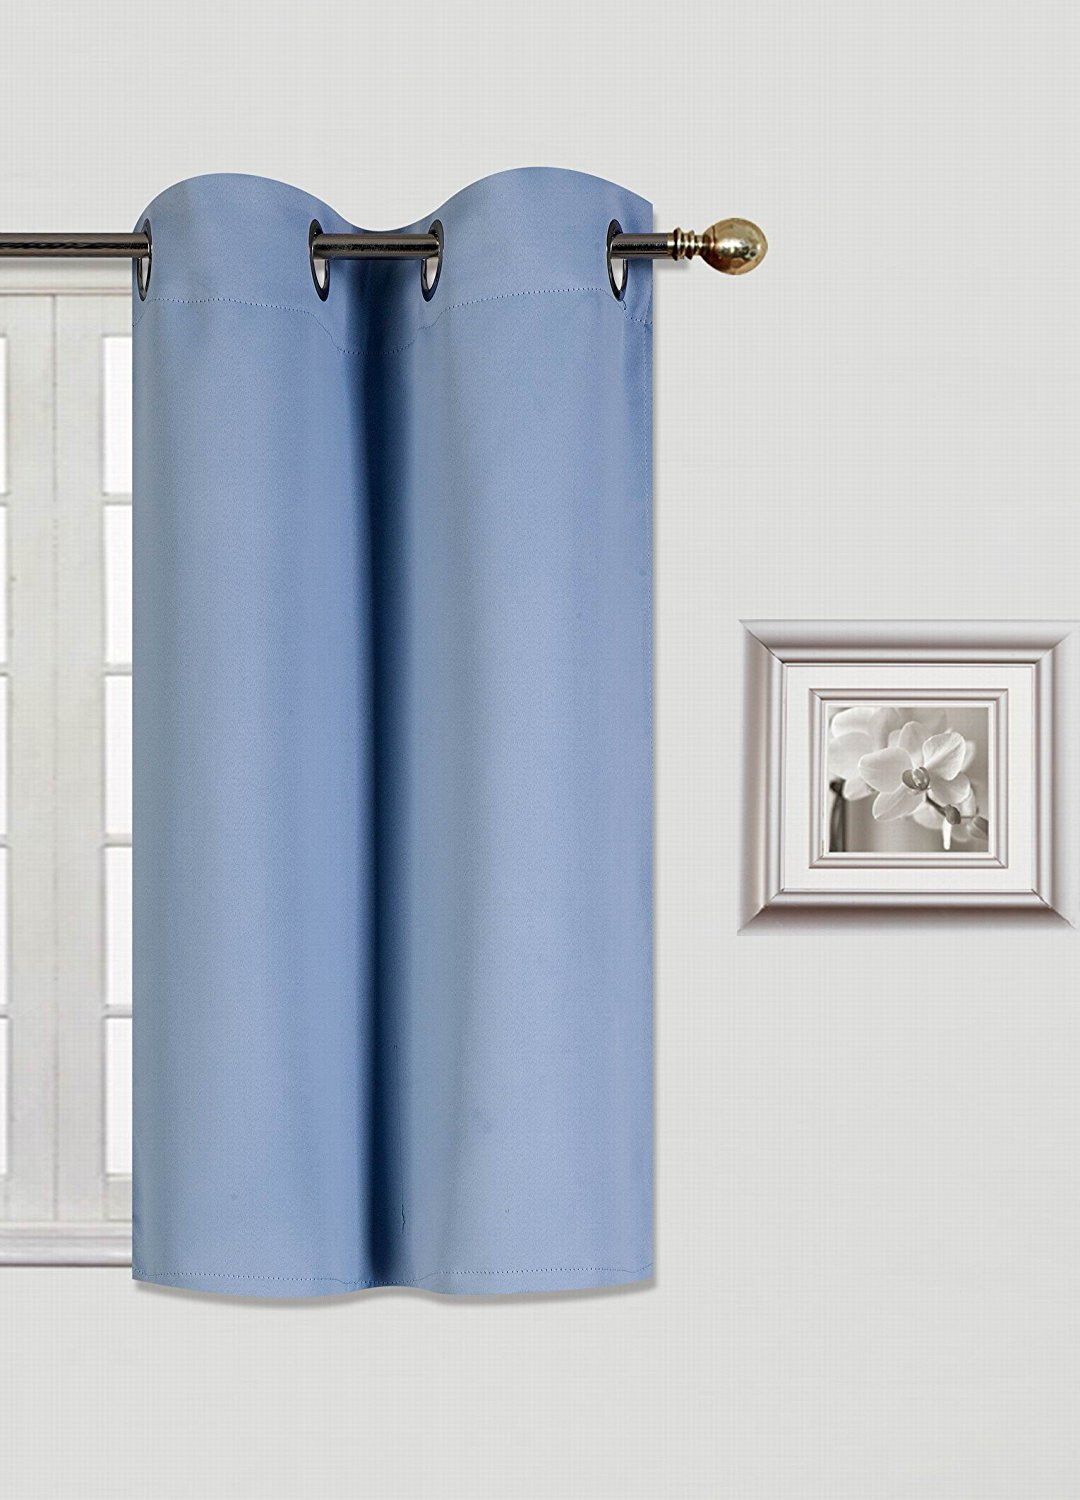 (K30) SLATE BLUE 1 Panel Silver Grommets KITCHEN TIER Window Curtain 3  Layered Thermal